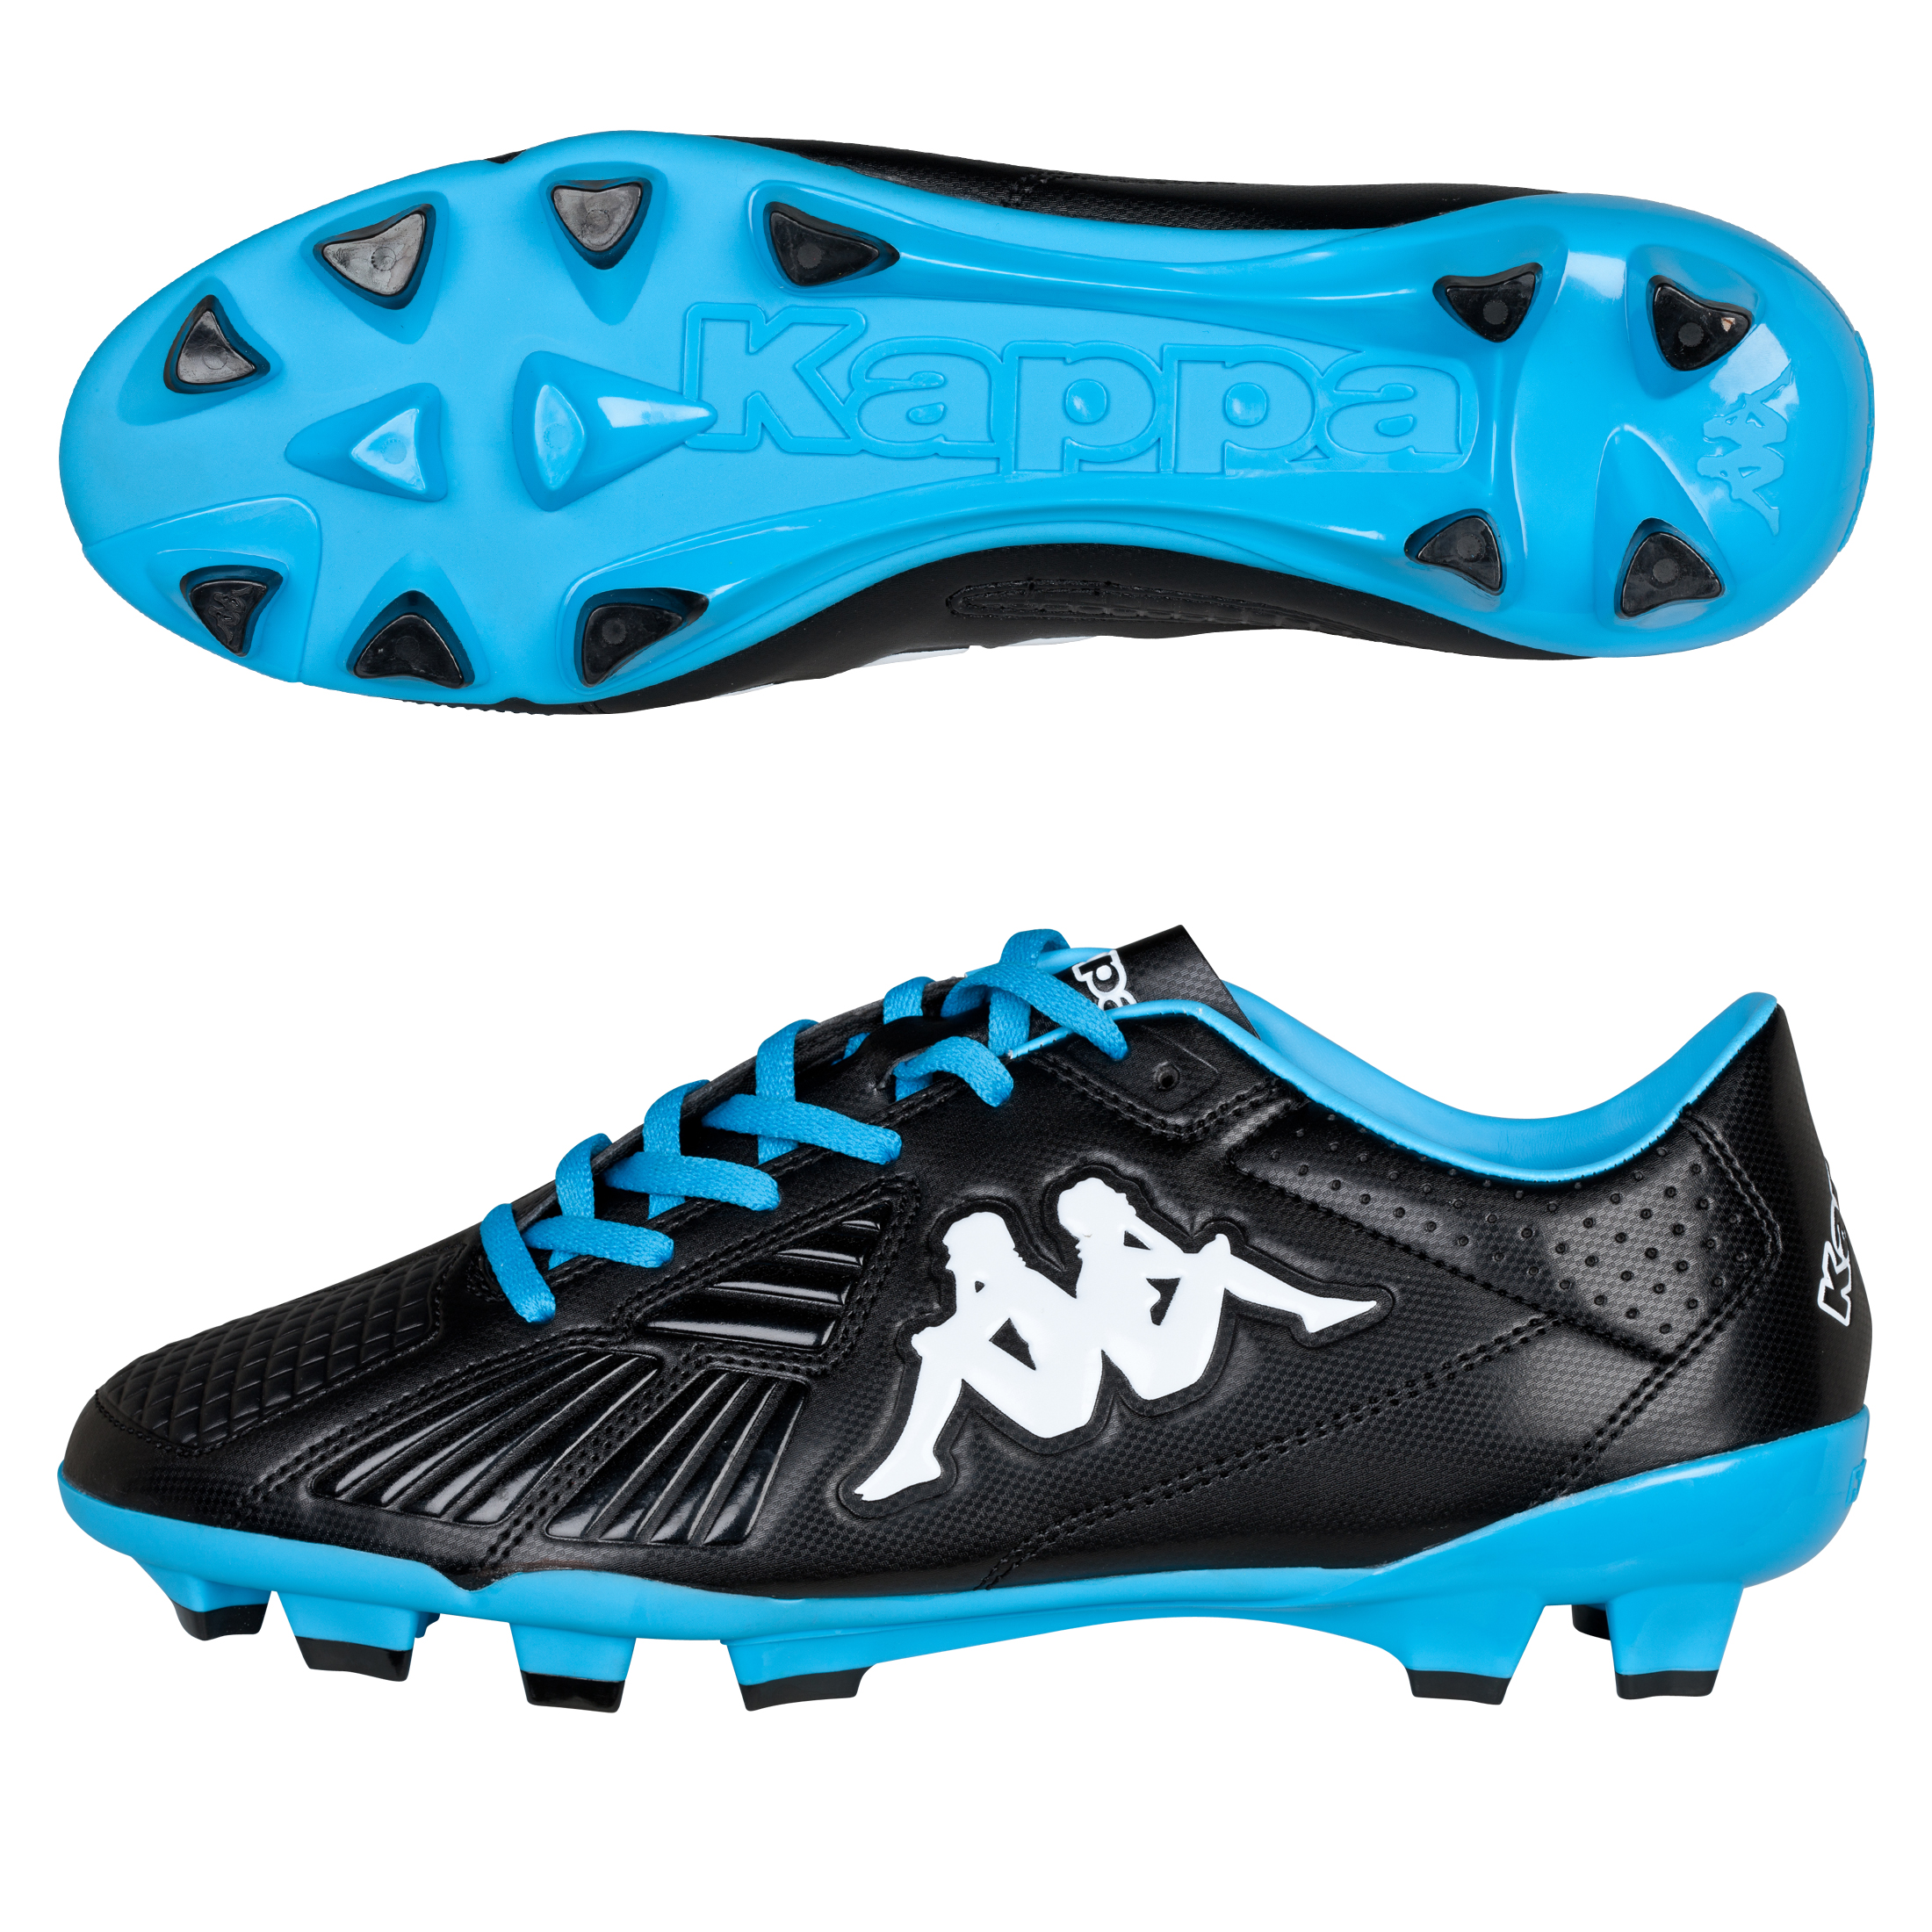 Kappa Starch Firm Ground Football Boots - Black/Cyan